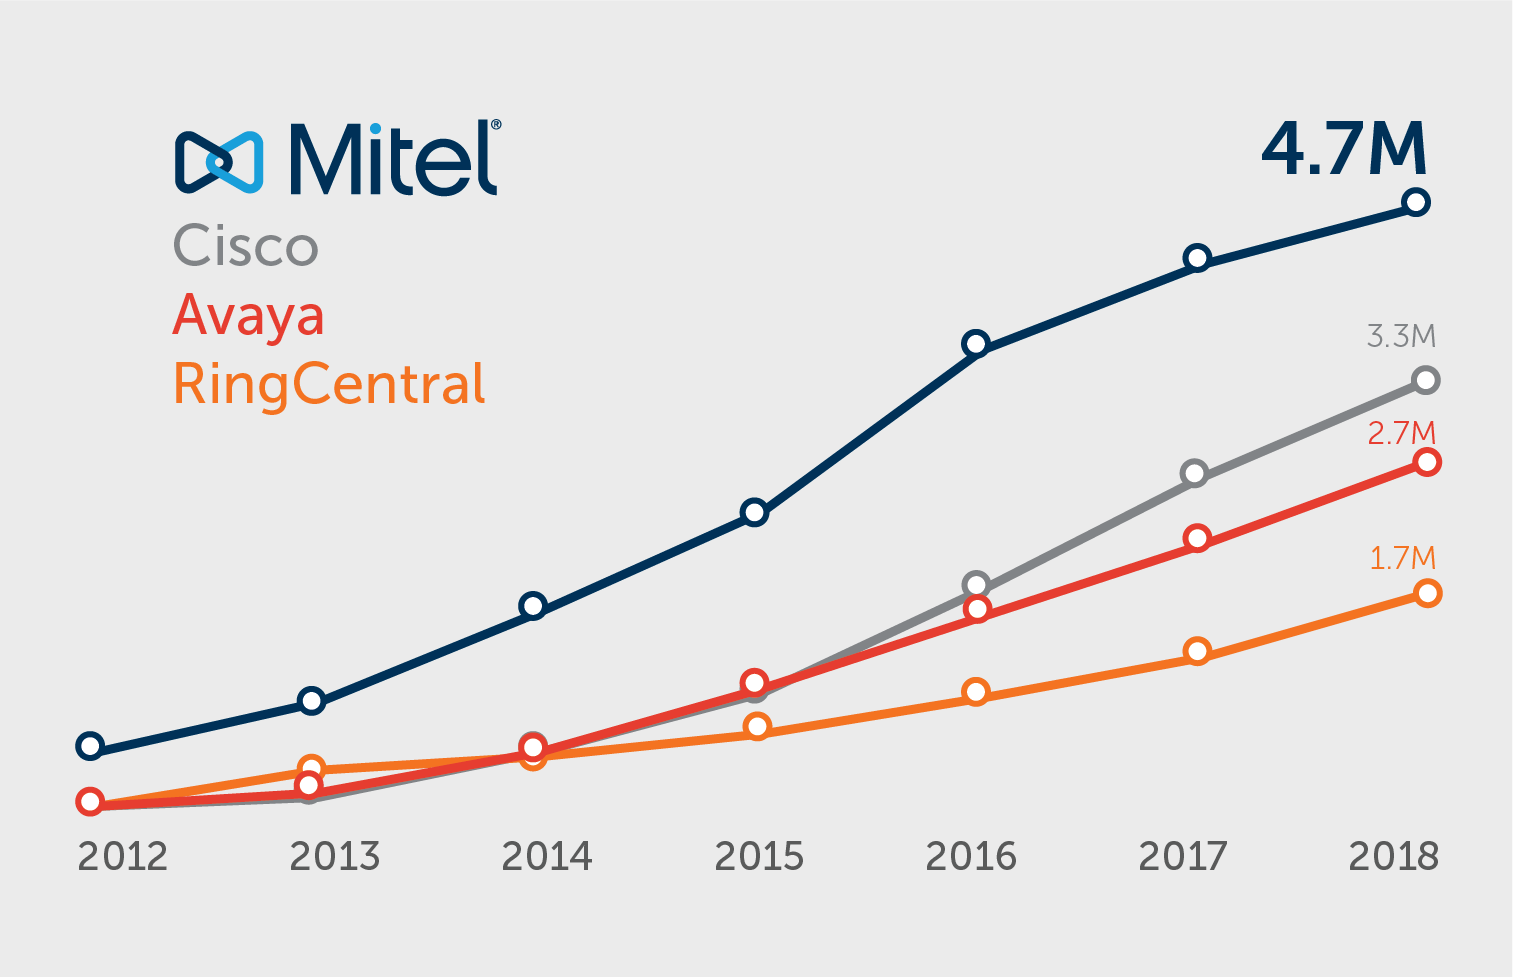 Mitel Growth Chart vs competitors